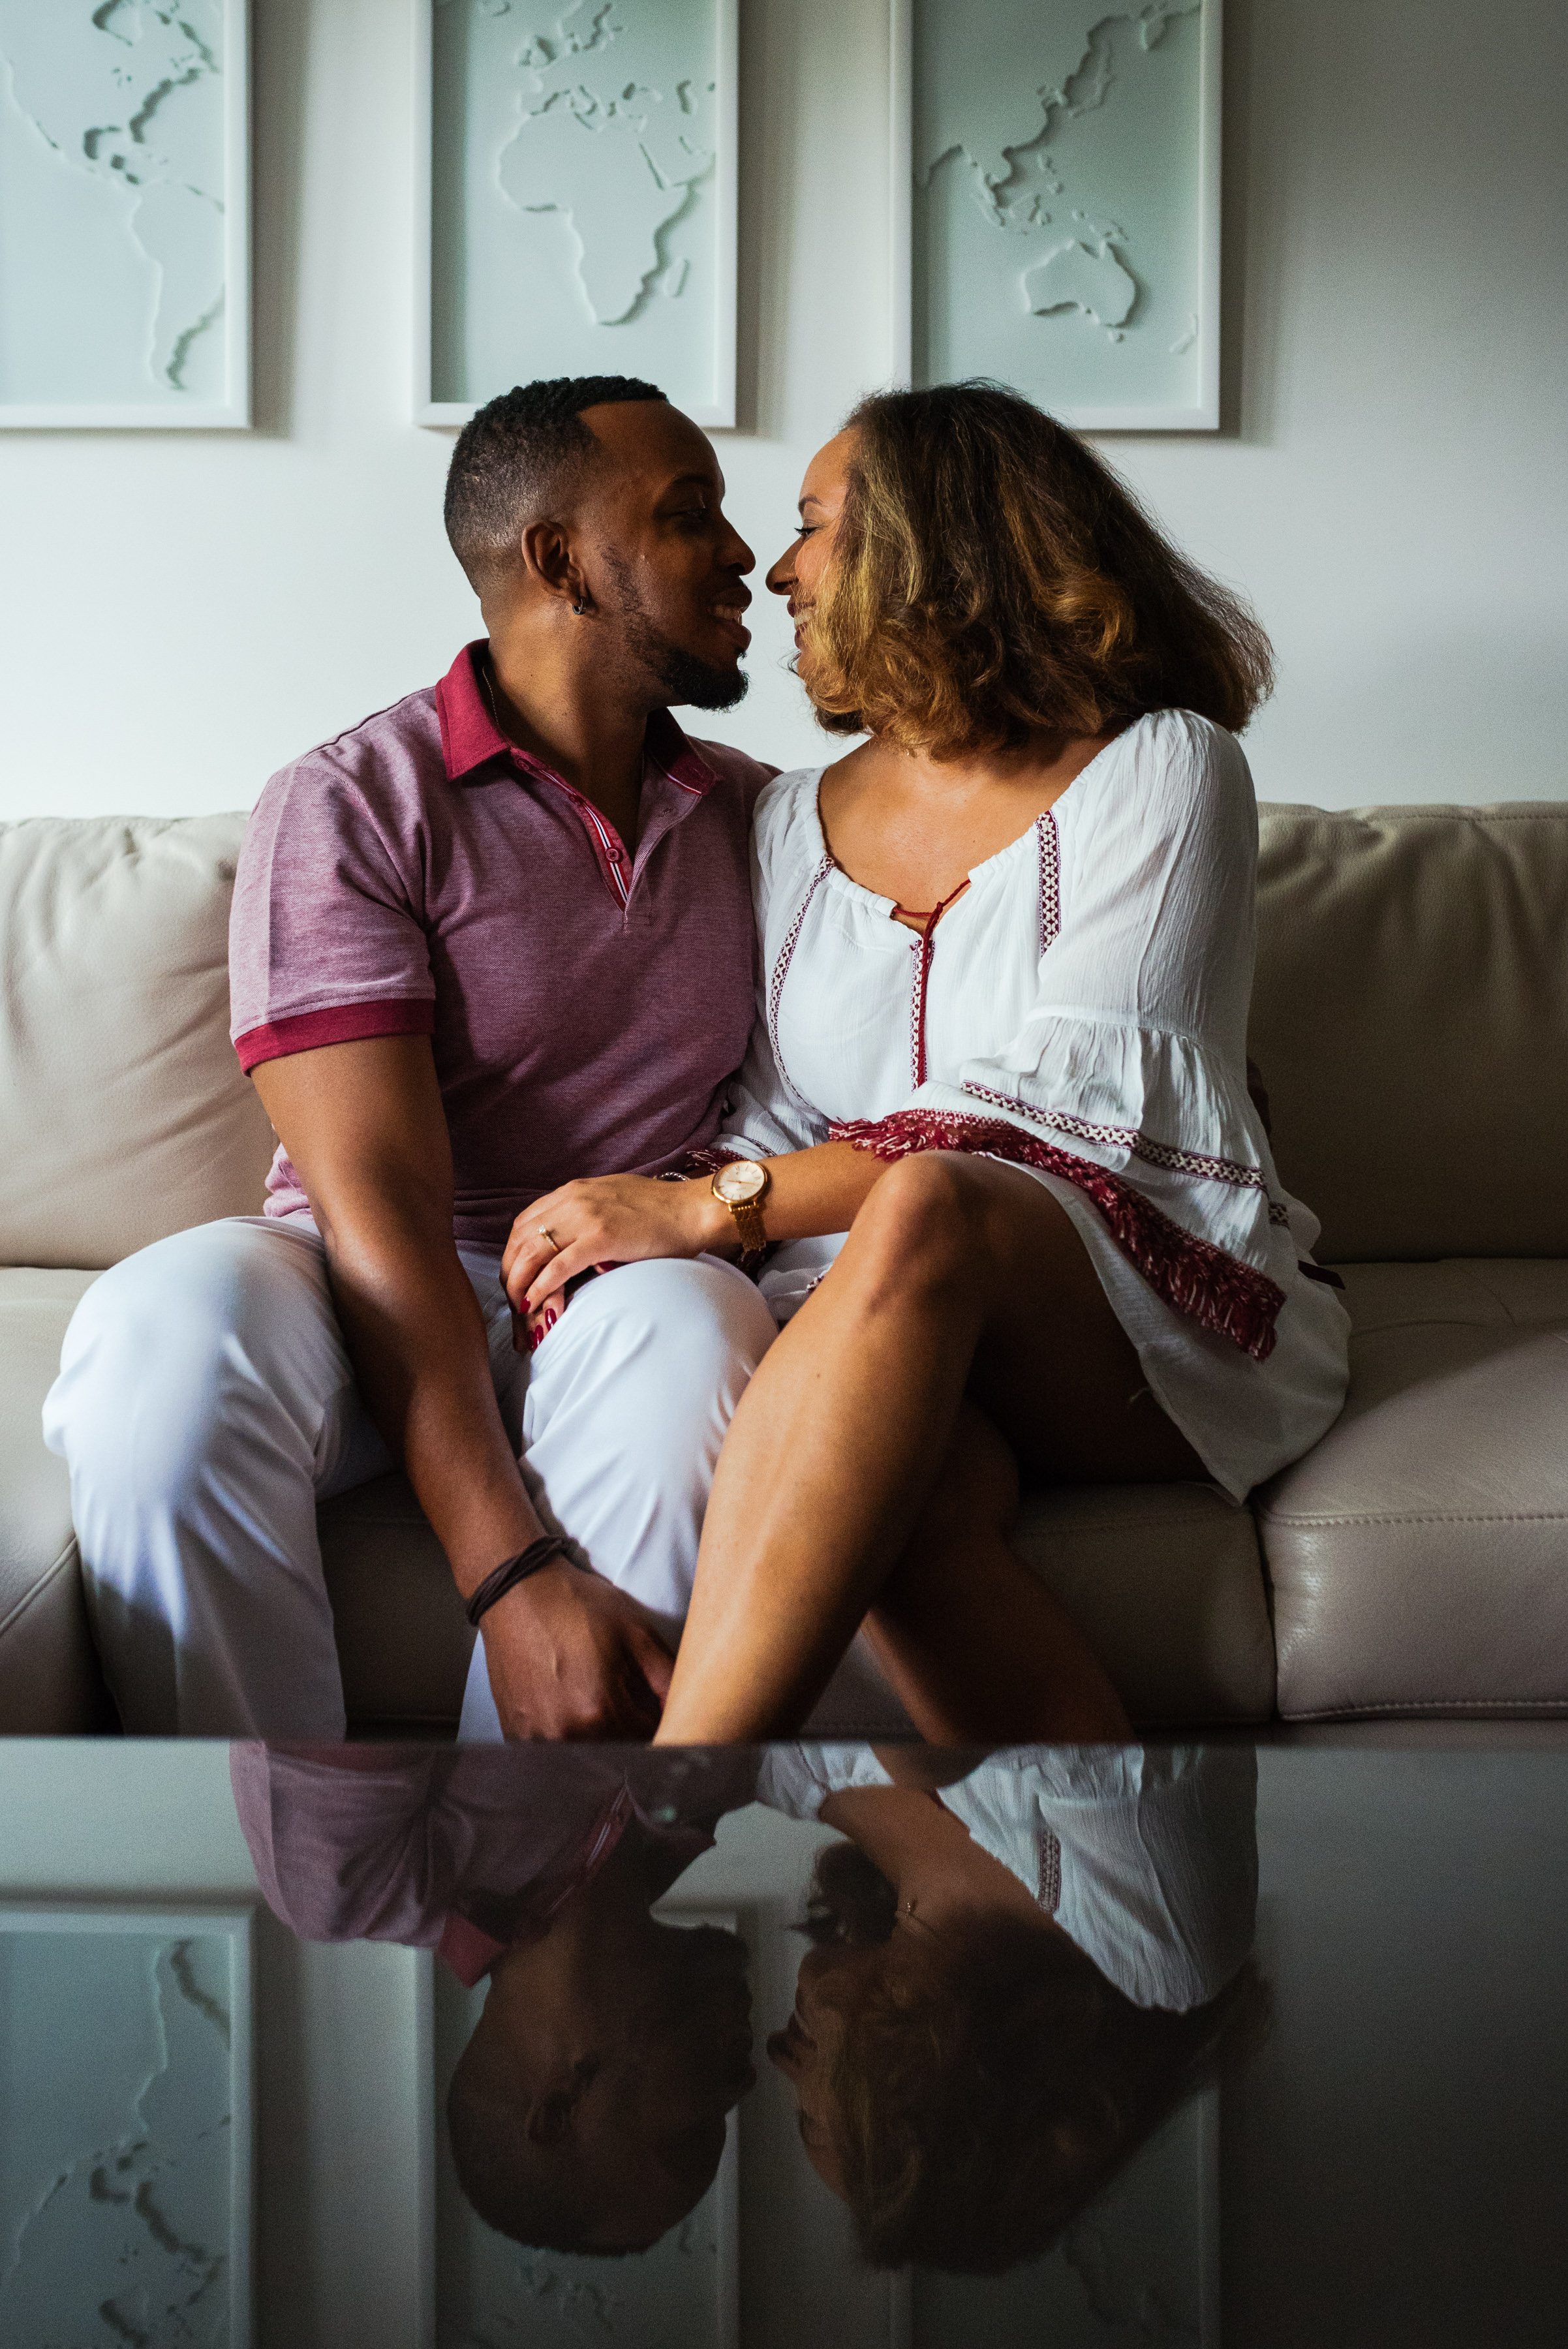 Engagement photos at home with reflection on coffeetable